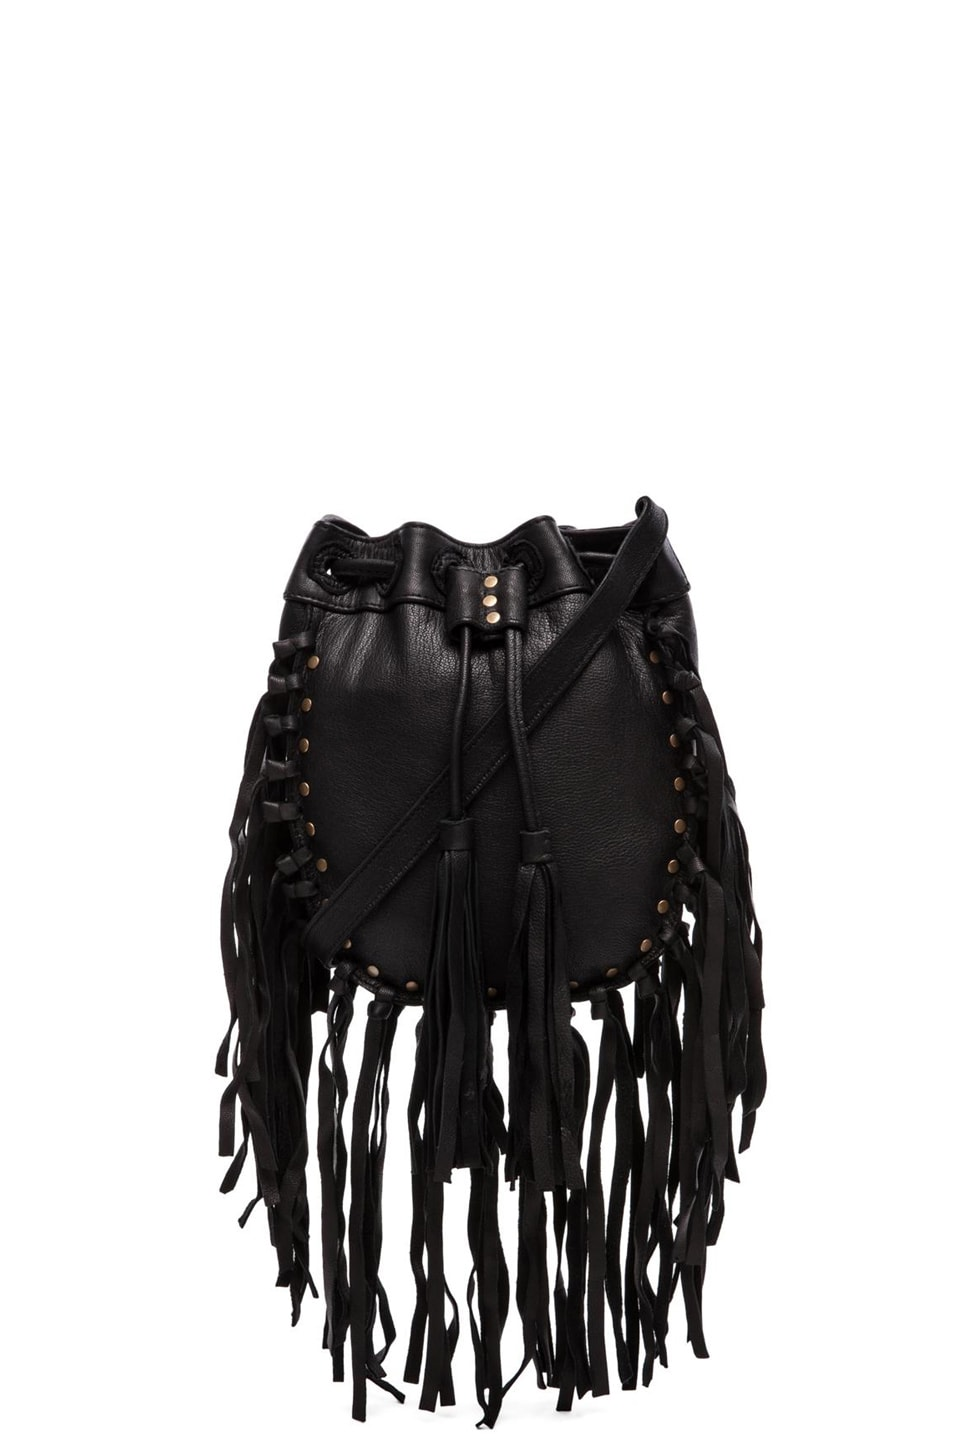 Cleobella Wild Fring Crossbody in Black